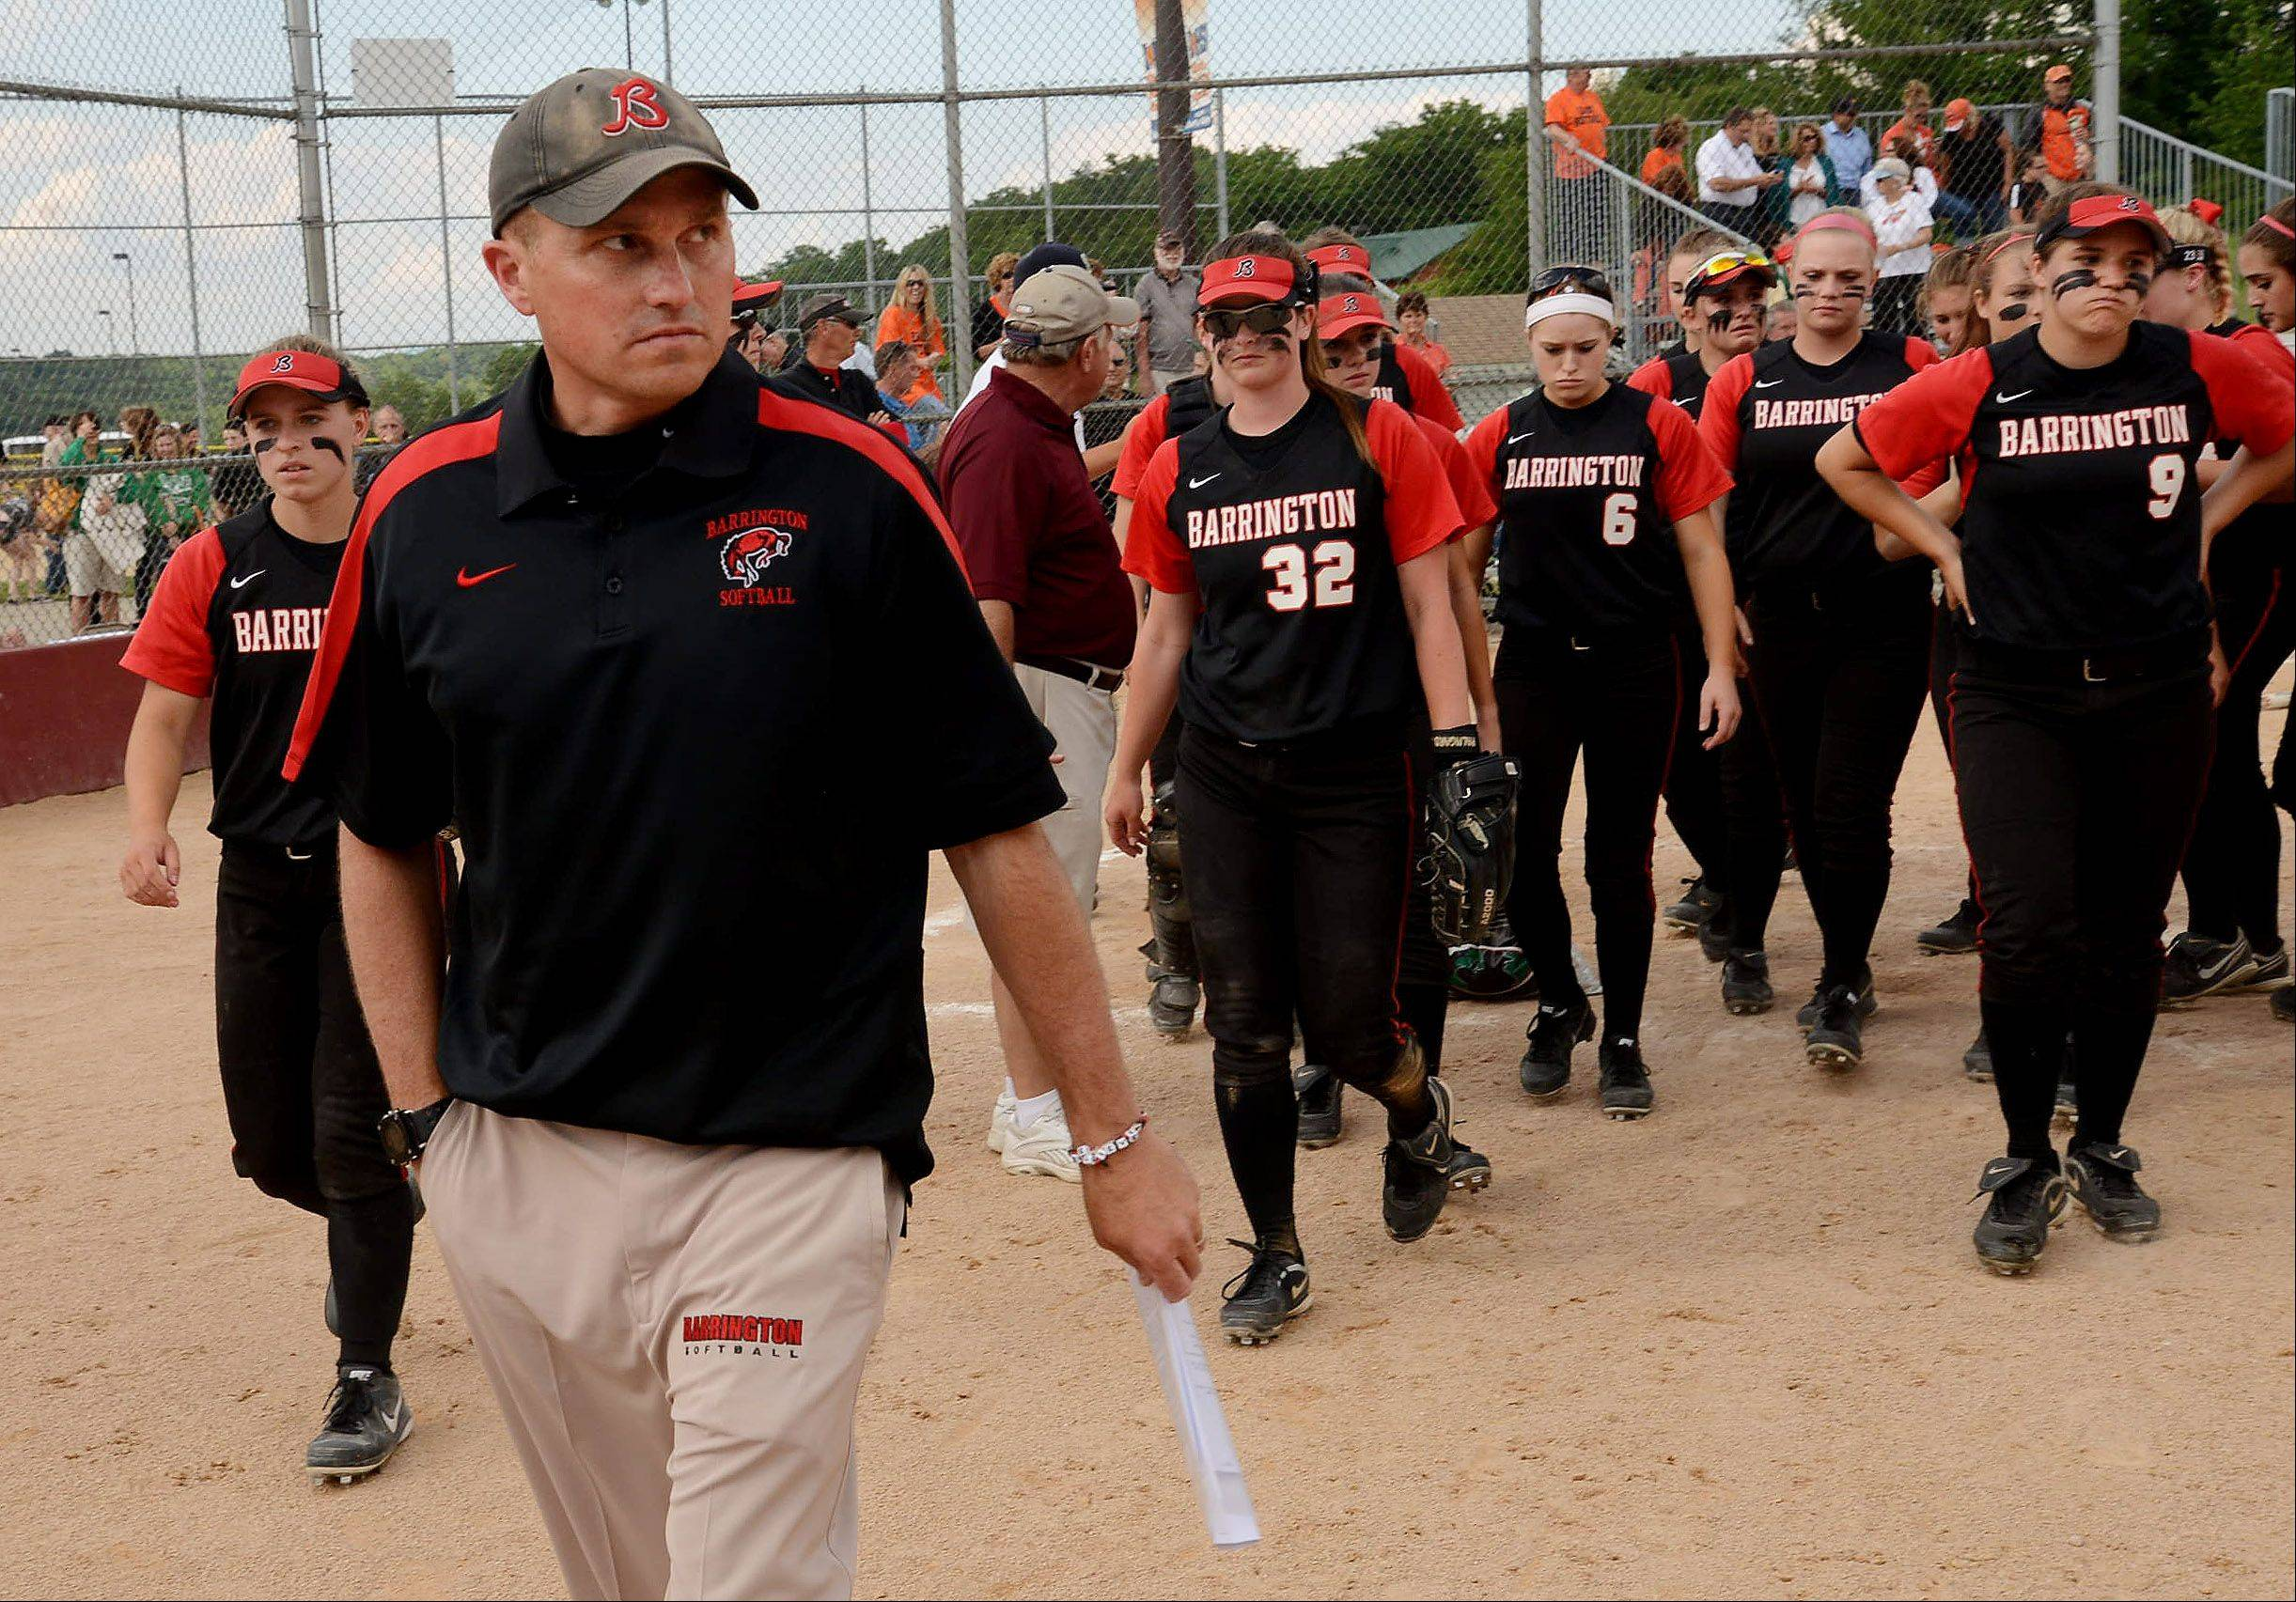 Barrington coach Perry Peterson leads his dejected team off the field after the Fillies fell shot against St.Charles East in the Class 4A state semifinals.